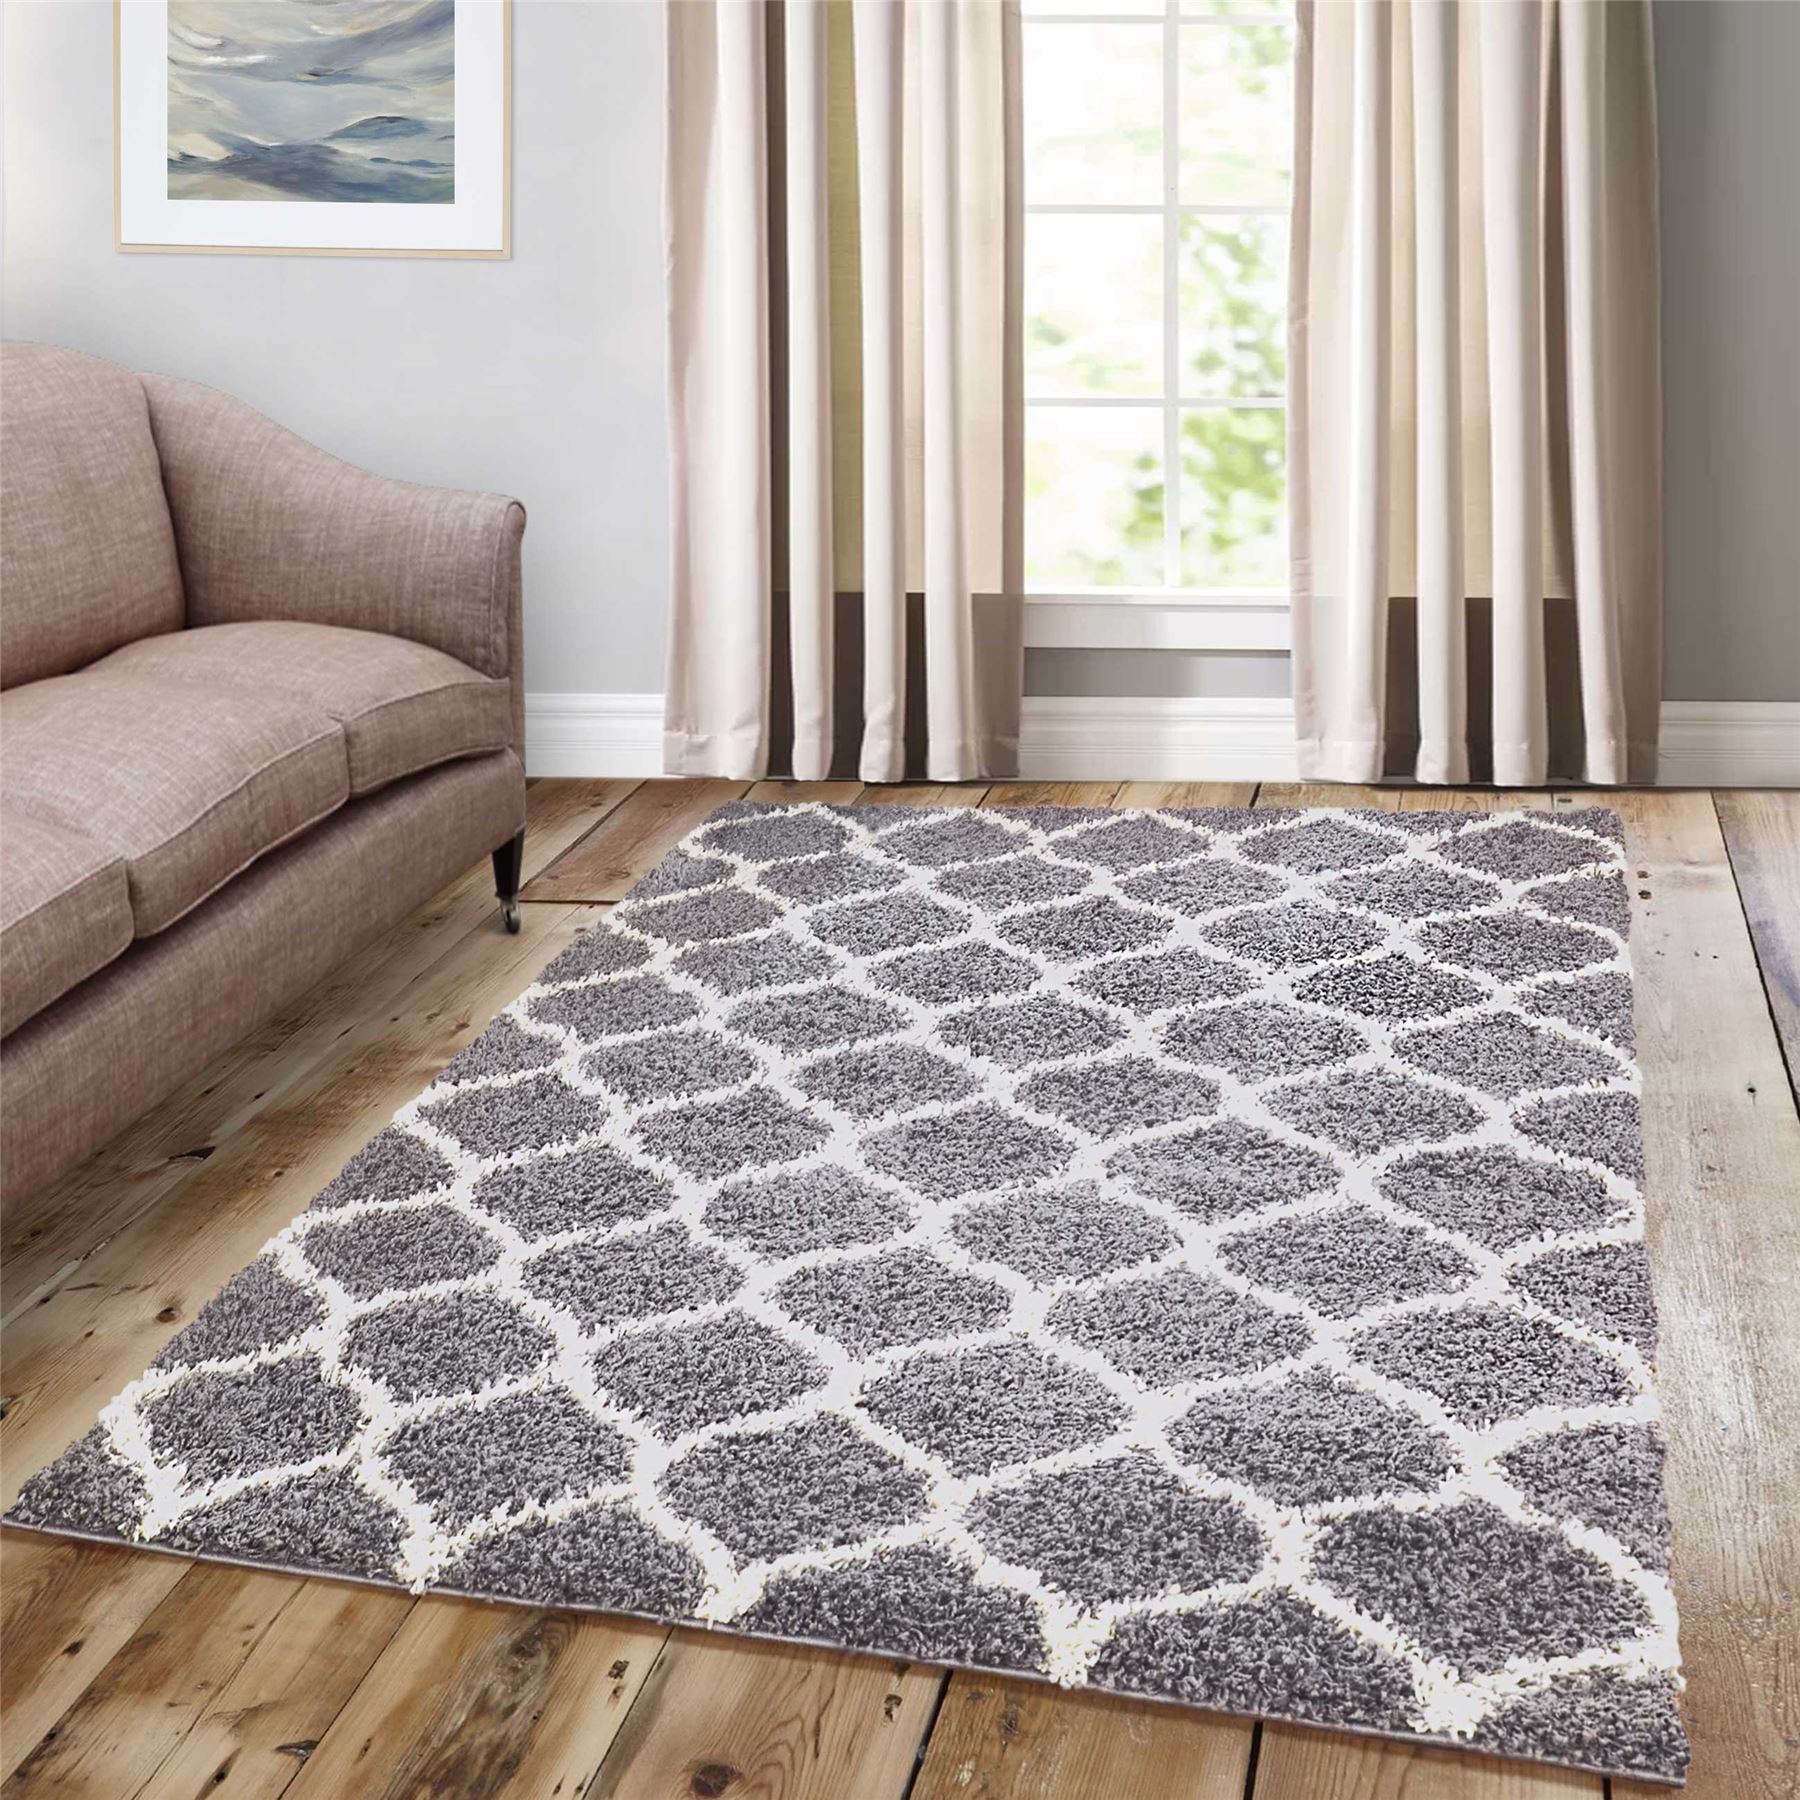 Dense-Pile-Trellis-Bedroom-Carpets-Thick-Shaggy-Rugs-Modern-Coloured-Pattern-Mat thumbnail 23